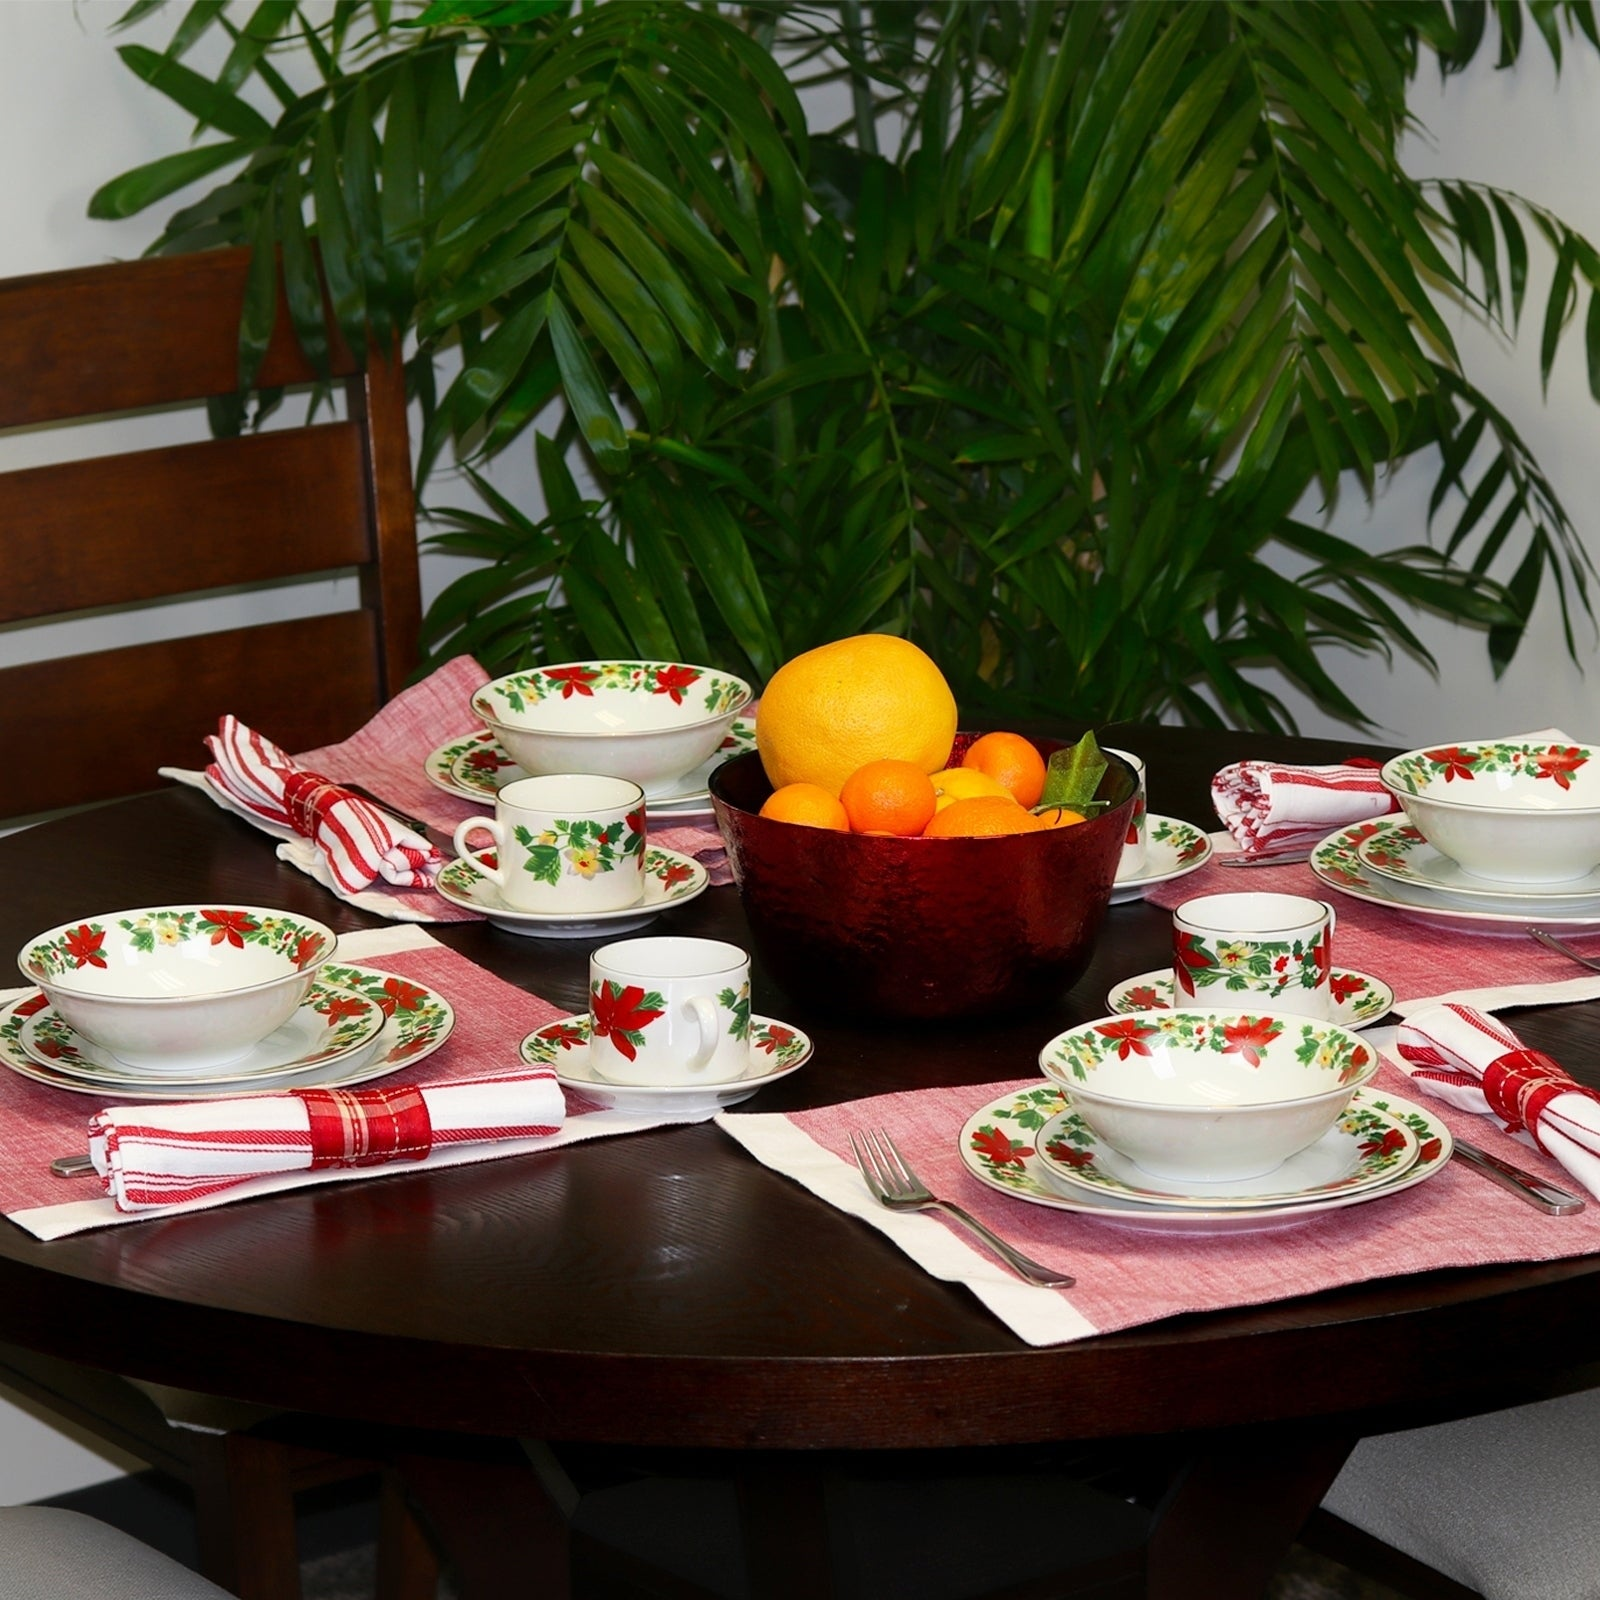 Poinsettia Holiday 20-Piece Dinnerware Set Decorated Rim - Free Shipping Today - Overstock - 24263892 & Poinsettia Holiday 20-Piece Dinnerware Set Decorated Rim - Free ...